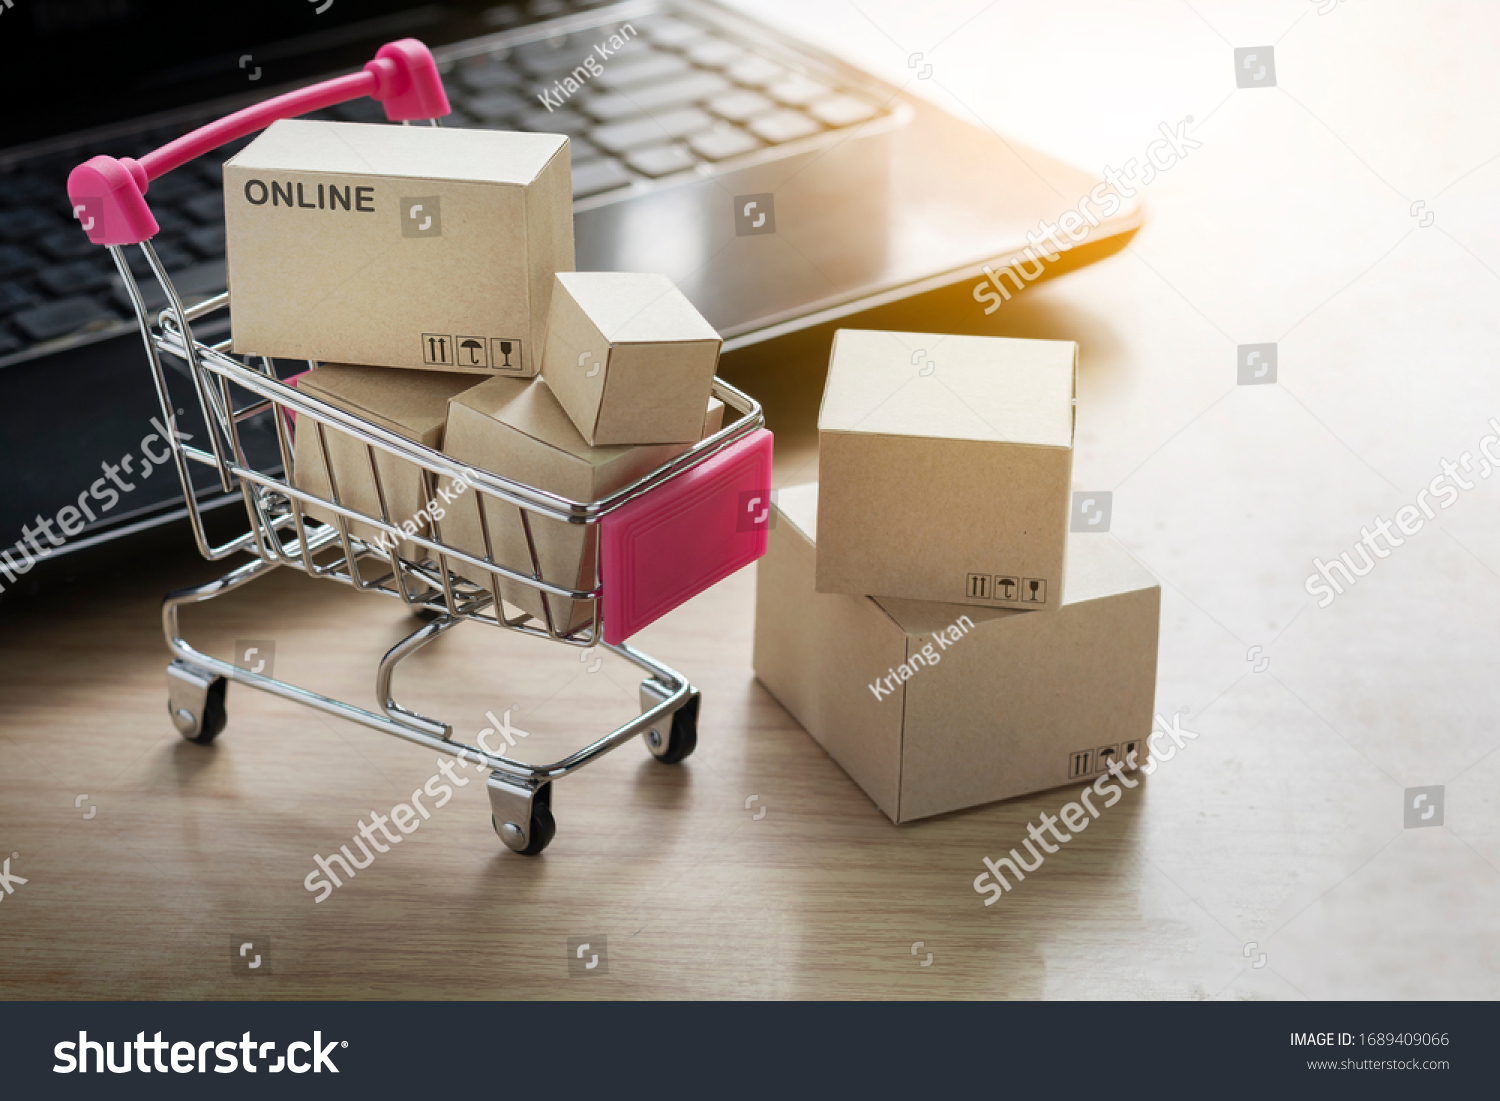 Paper shopping small box express in a shopping cart and laptop notebook on wood table background. Online shopping concept. #1689409066